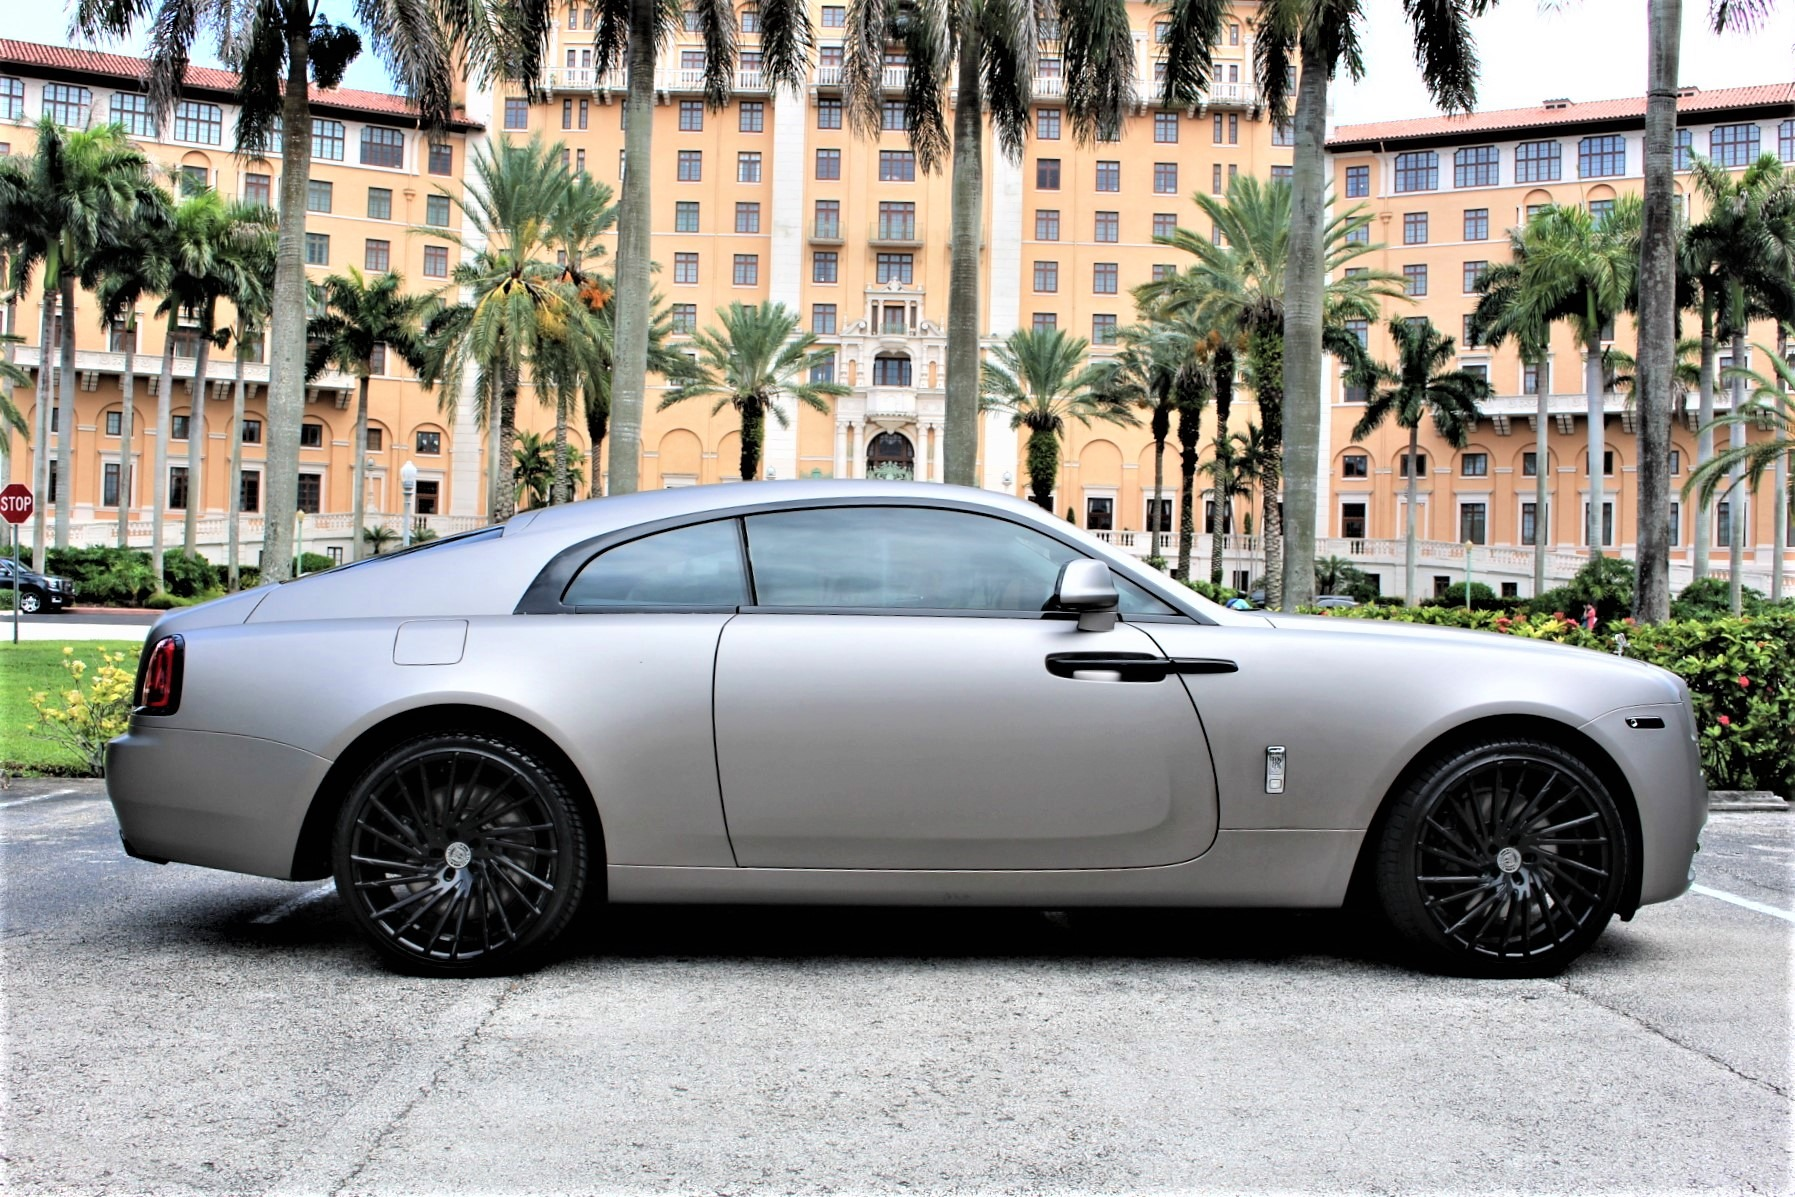 Used 2015 Rolls-Royce Wraith for sale $168,850 at The Gables Sports Cars in Miami FL 33146 1